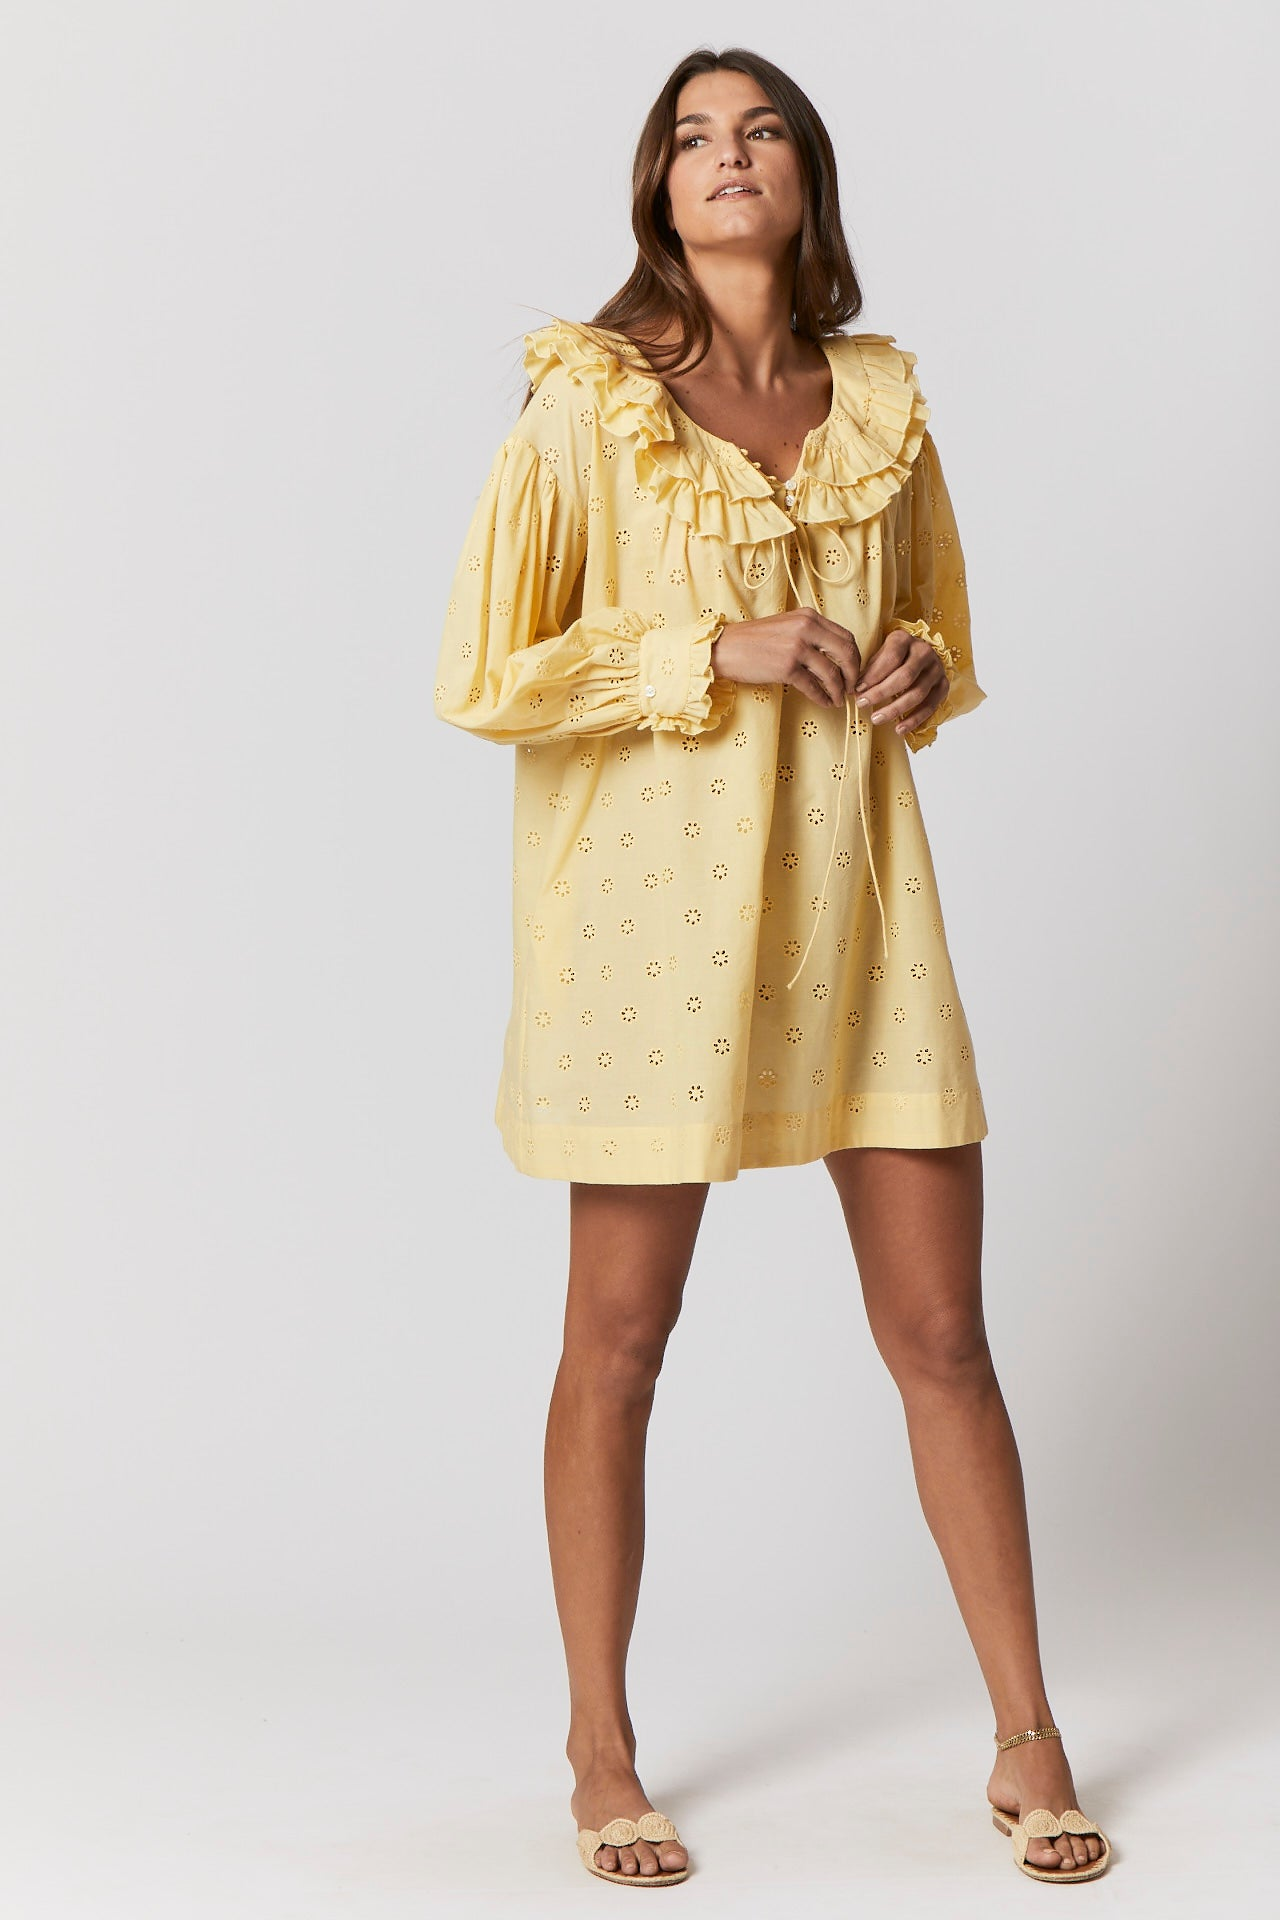 YELLOW FLORAL EYELET POET TUNIC (PRE-ORDER)